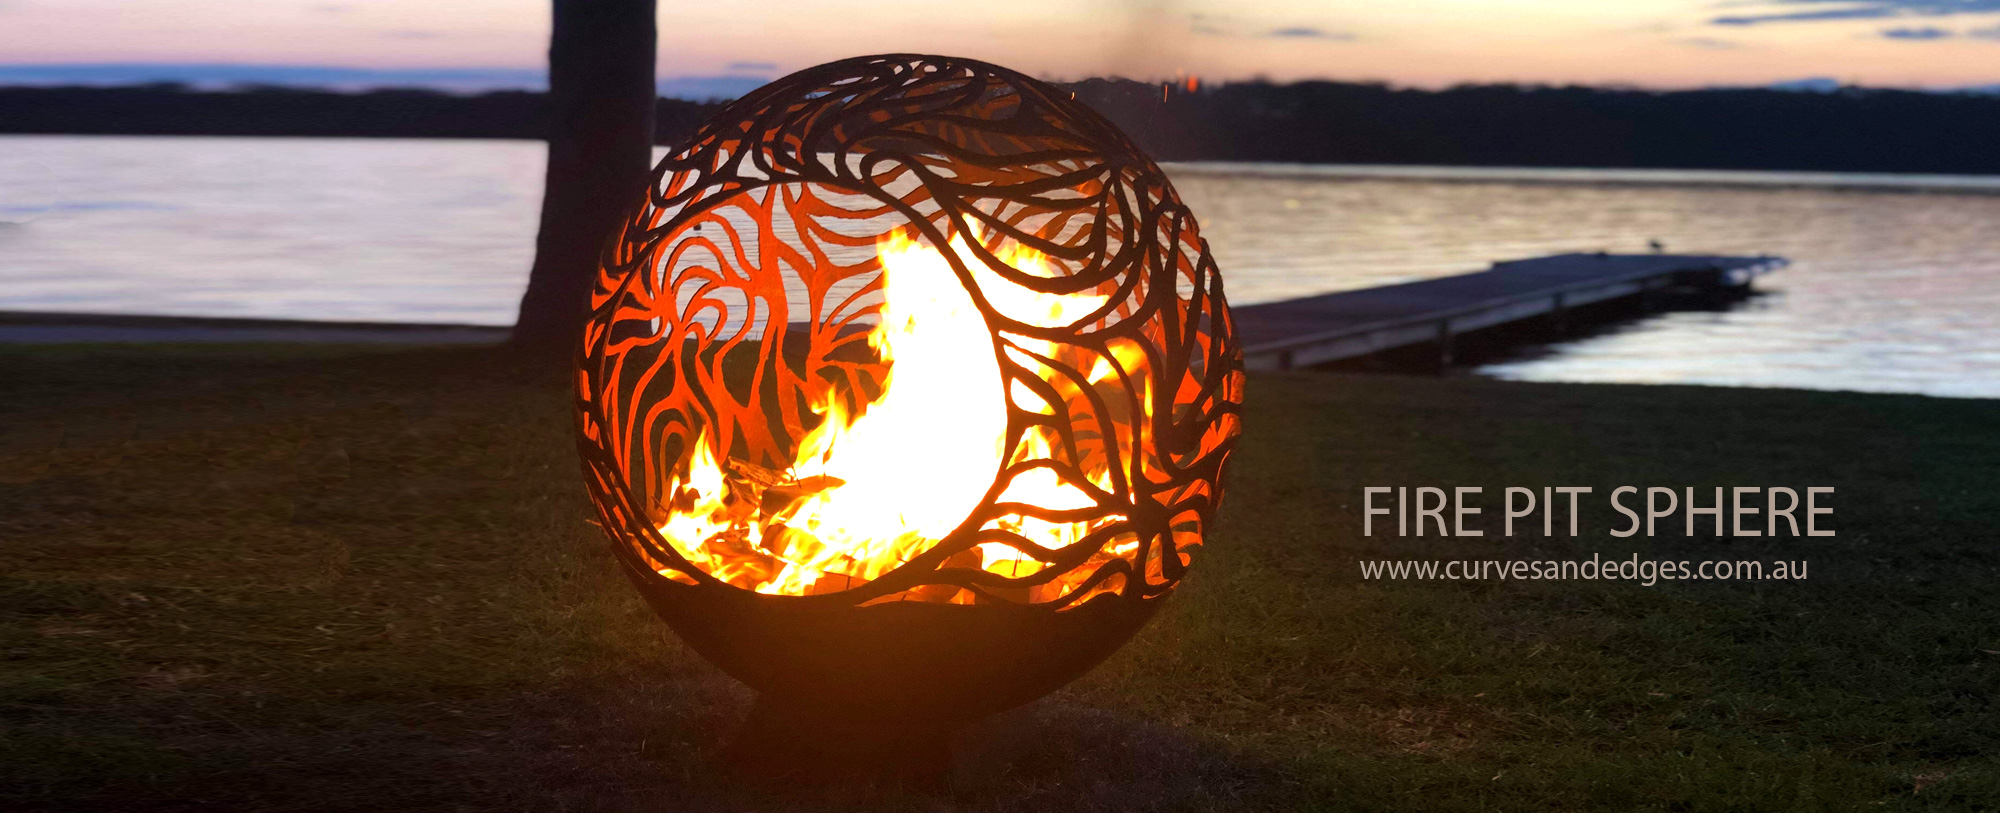 Fire Pit Sphere influenced by our Ab